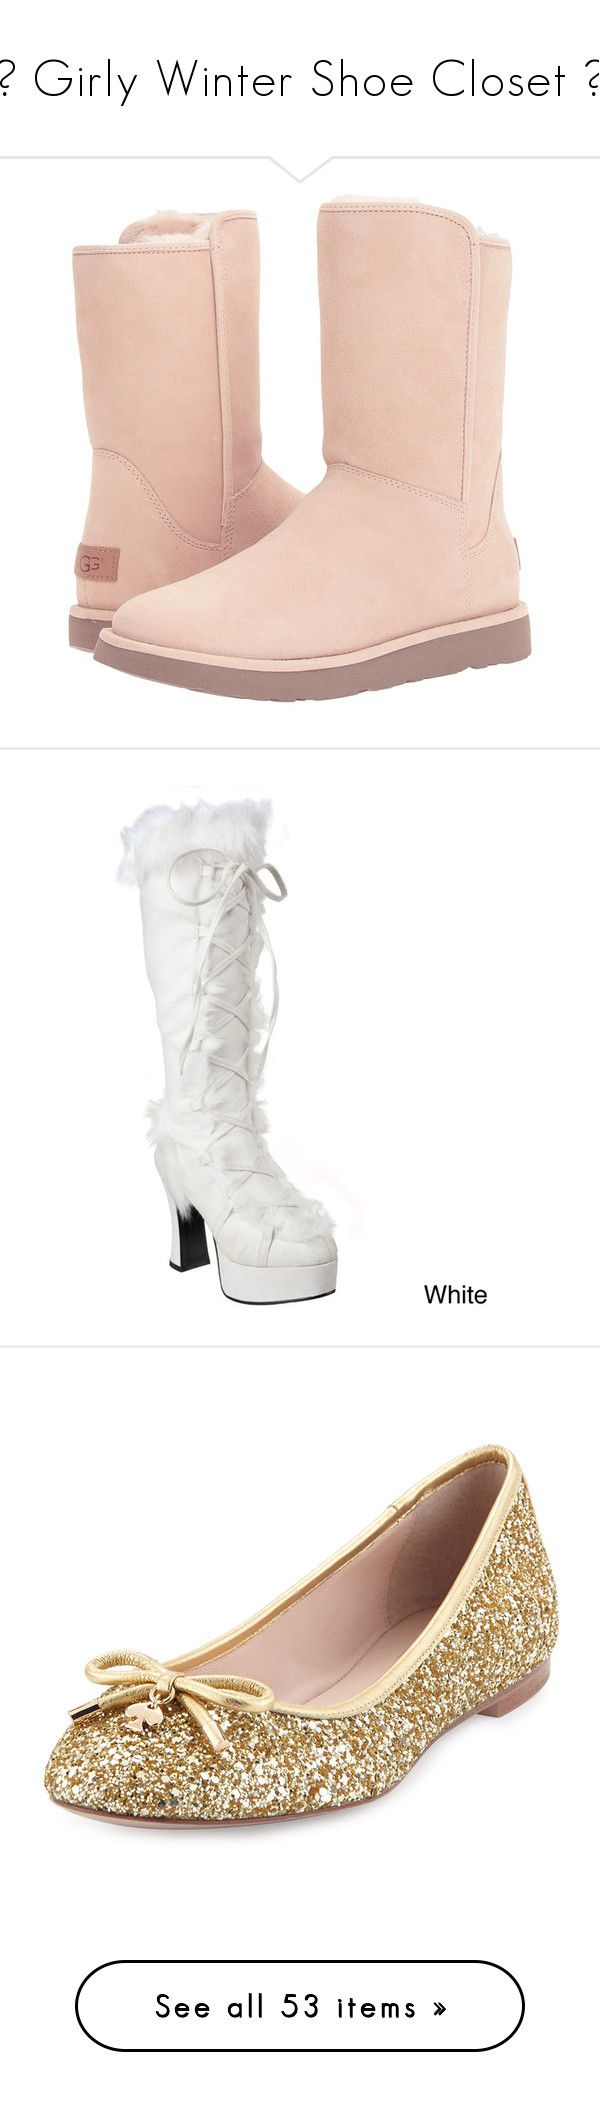 """""""♡ Girly Winter Shoe Closet ♡"""" by kaylalovesowls ❤ liked on Polyvore featuring shoes, boots, ankle booties, ankle boots, white, short ankle boots, white booties, ugg flats, white flats and mid-calf boots"""